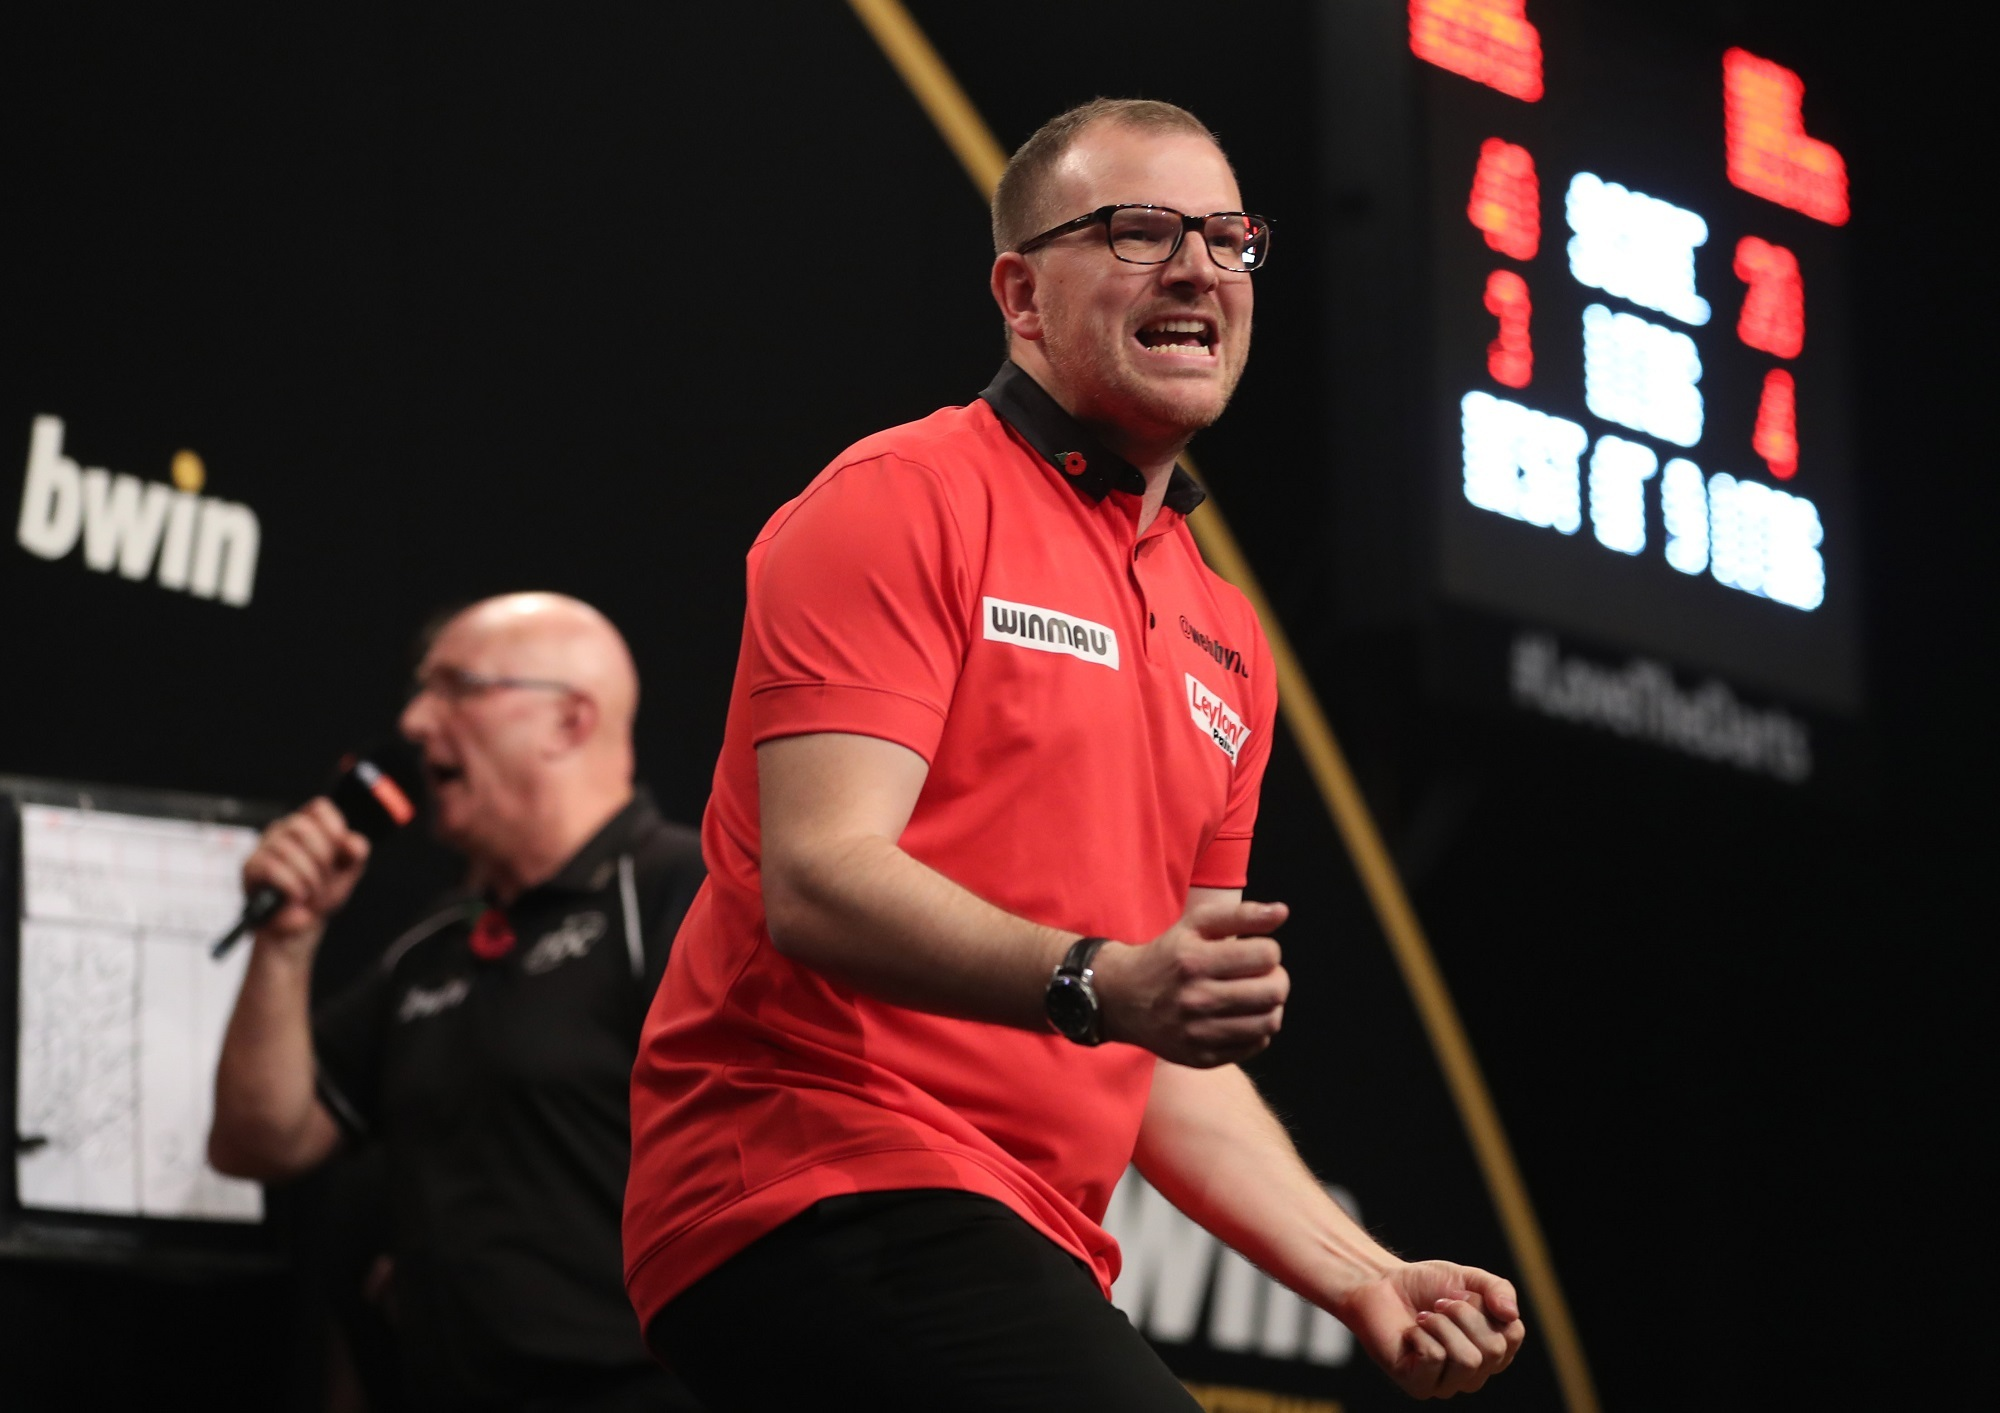 Mark Webster at the 2017 Grand Slam of Darts